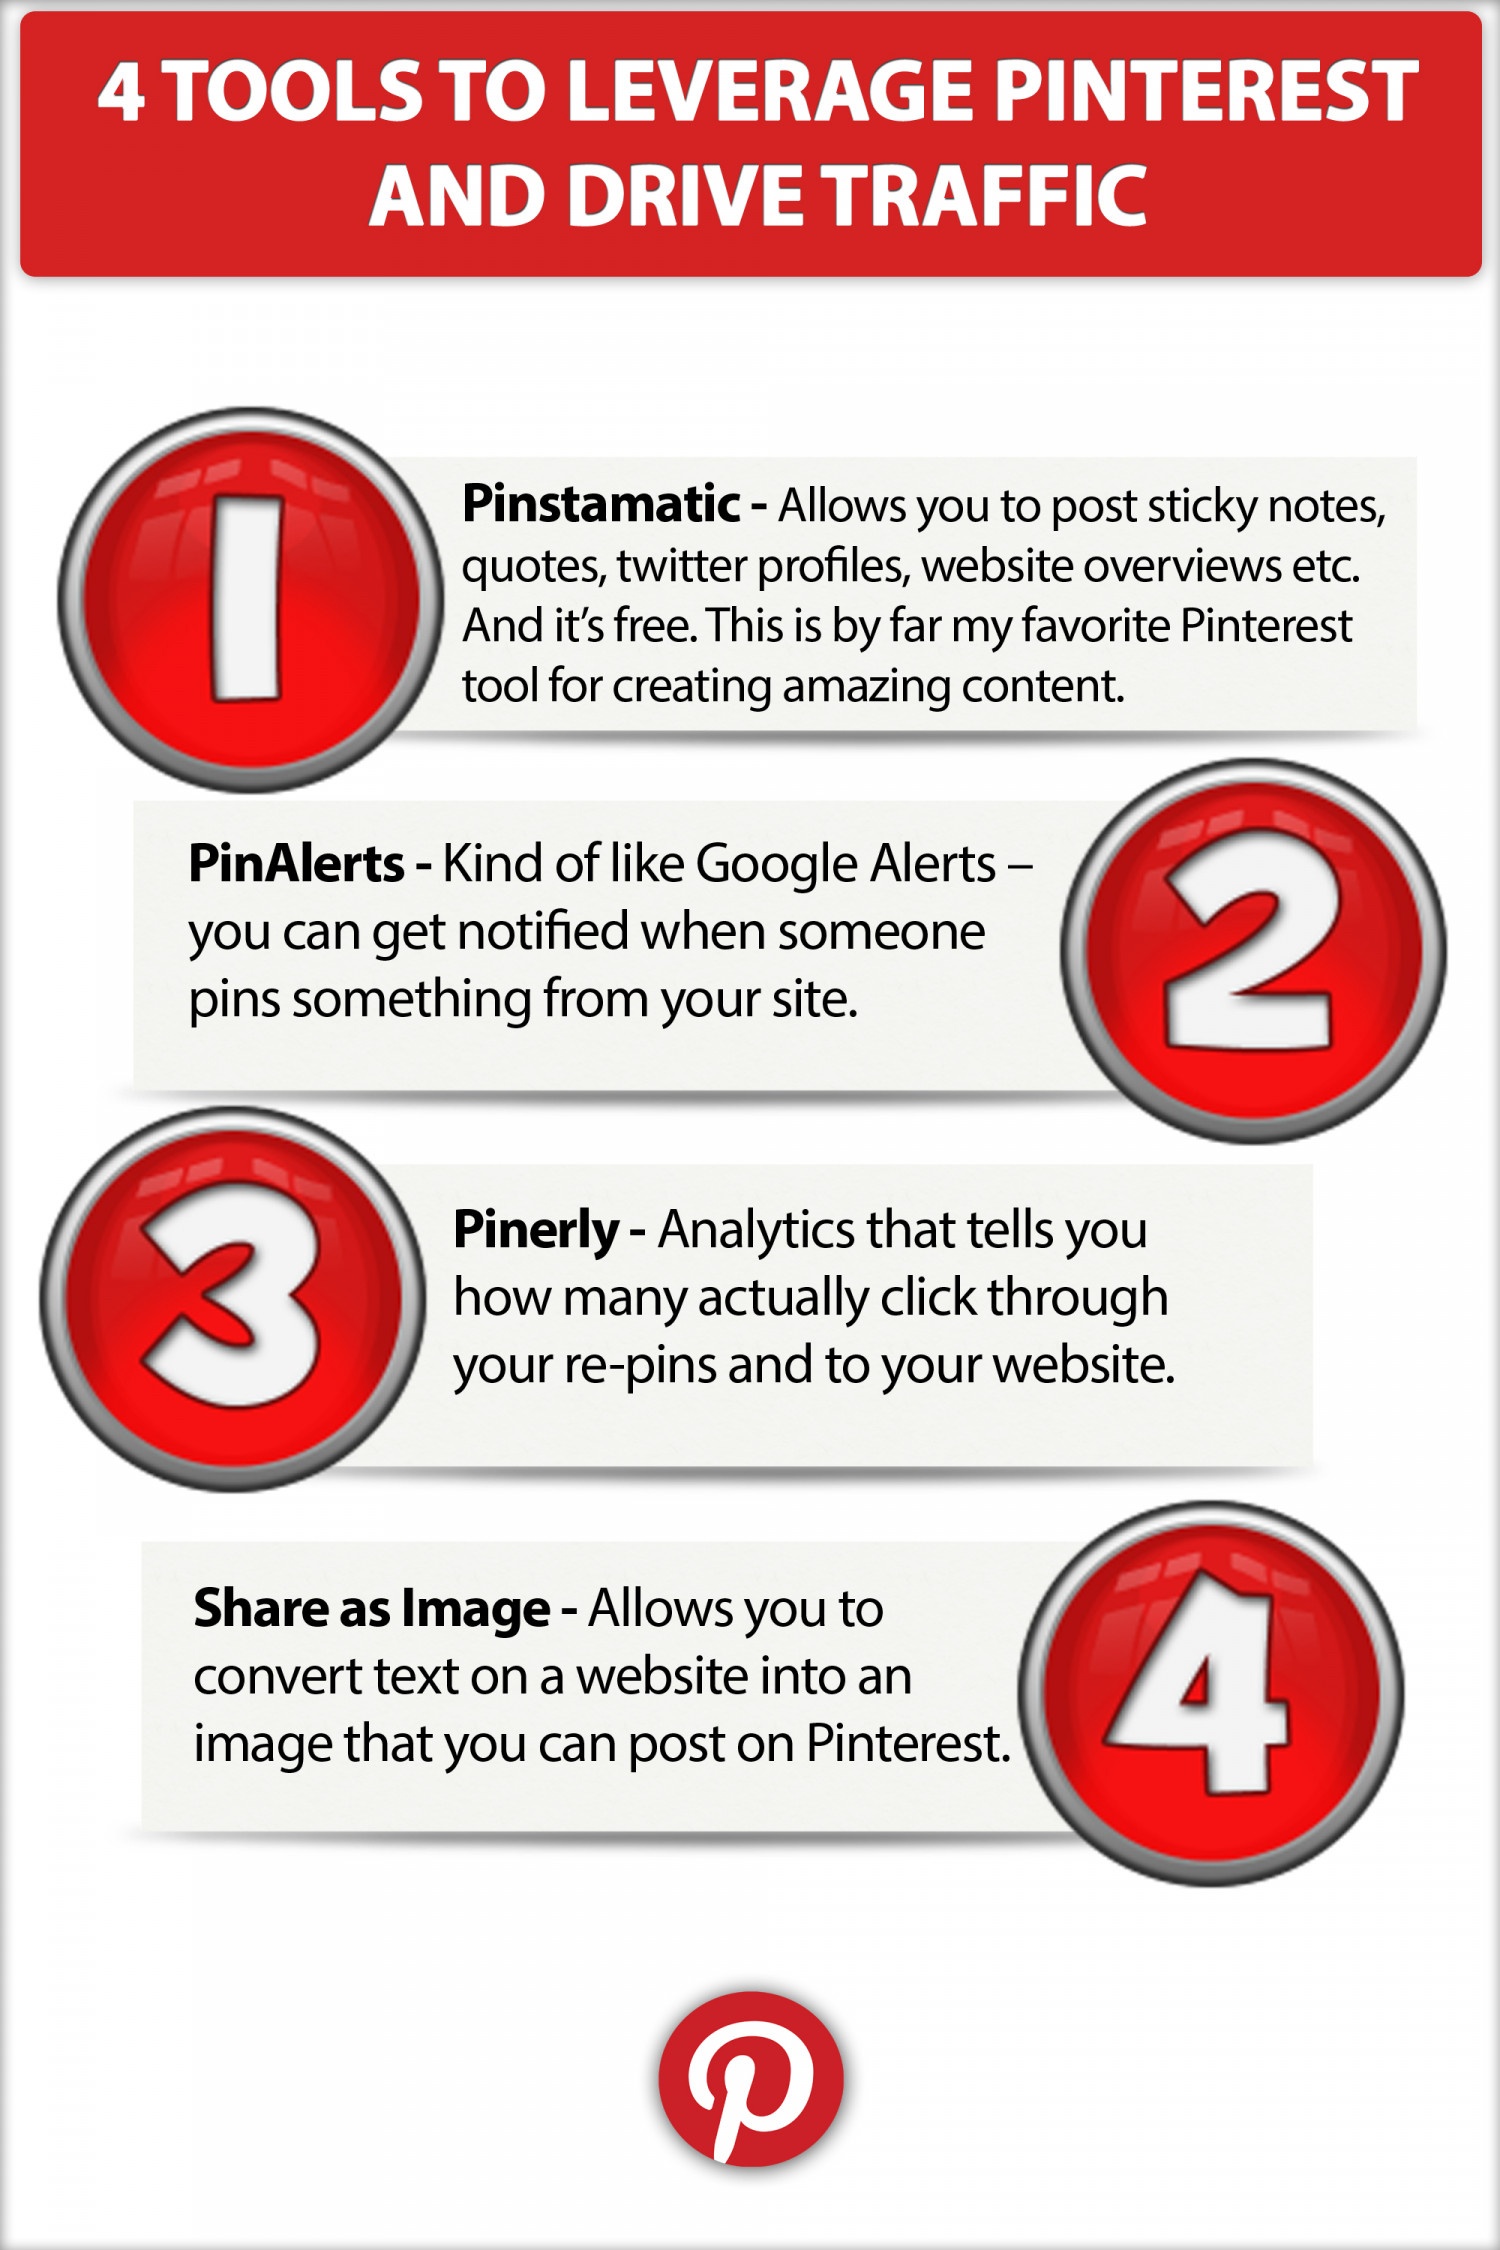 4 Tools to Leverage Pinterest and Drive Traffic  Infographic